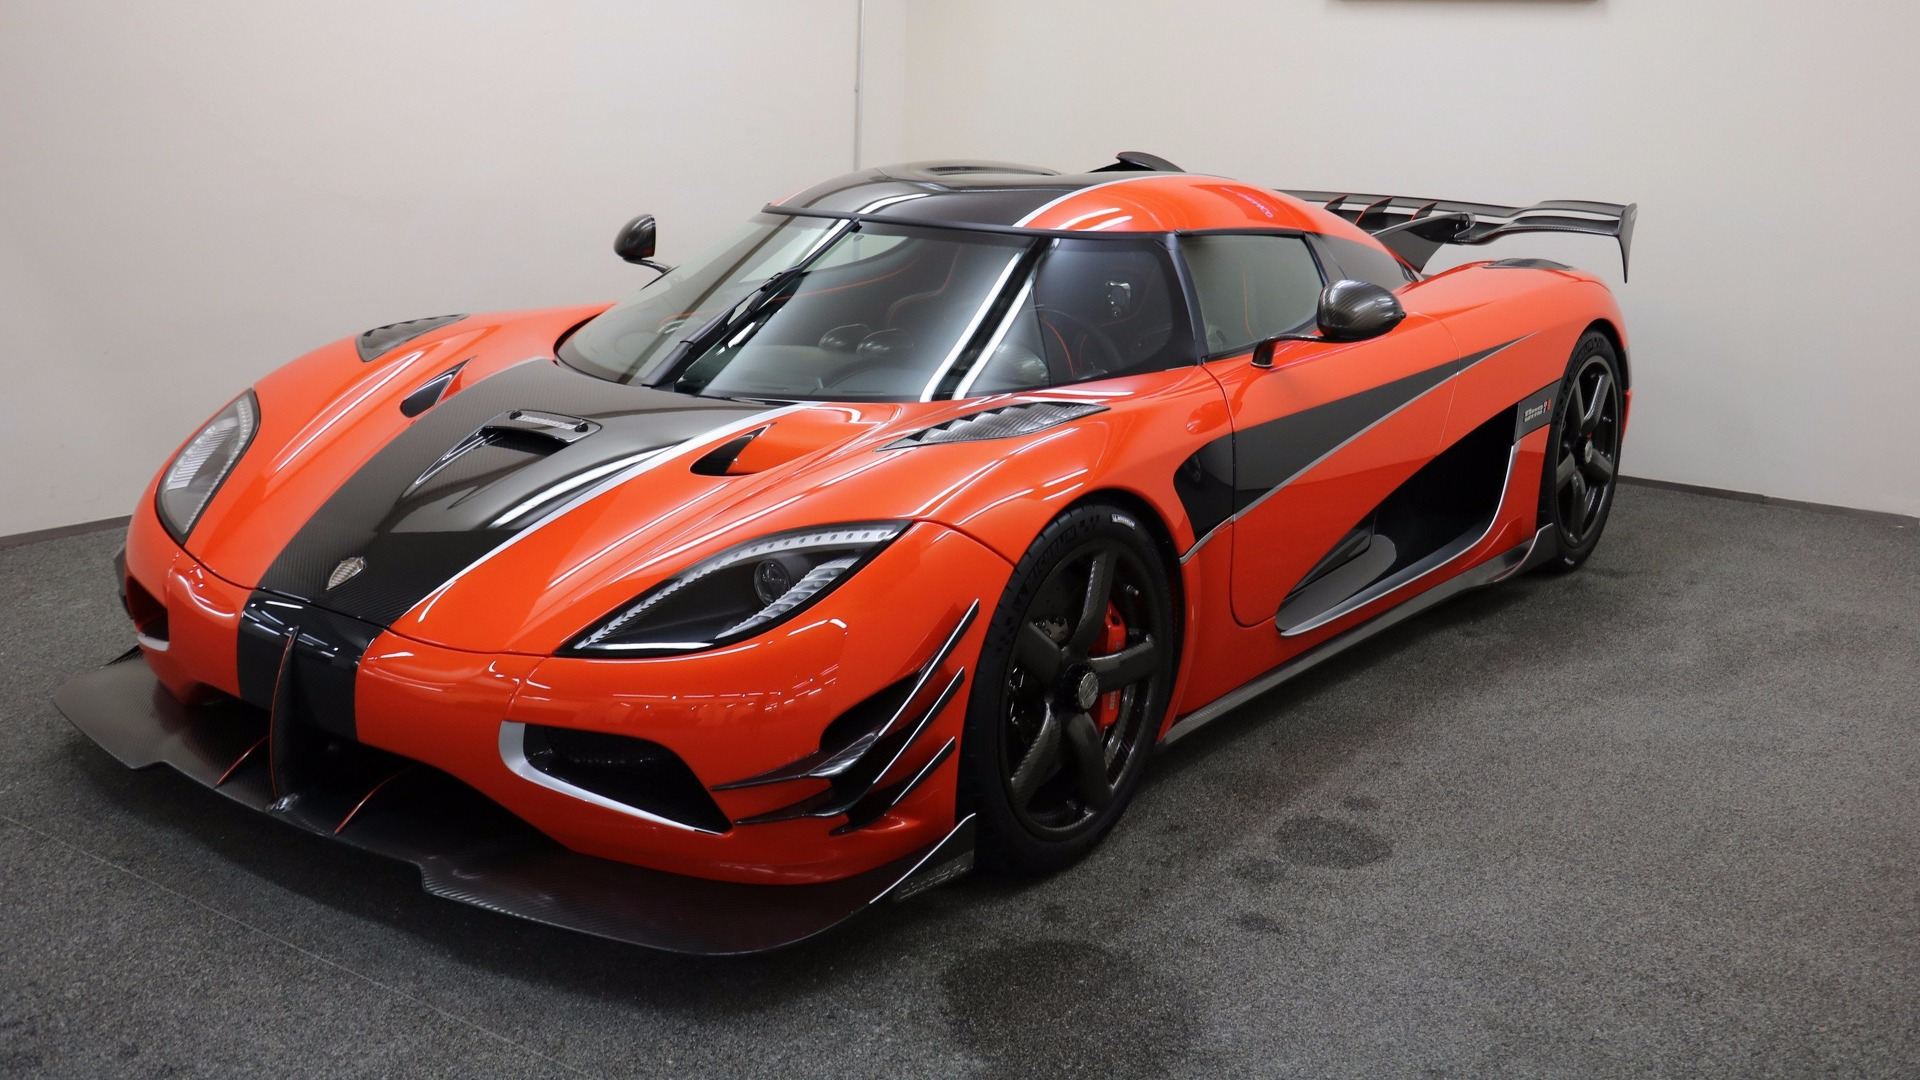 Ultra Rare Koenigsegg Agera One Of Comes Up For Sale